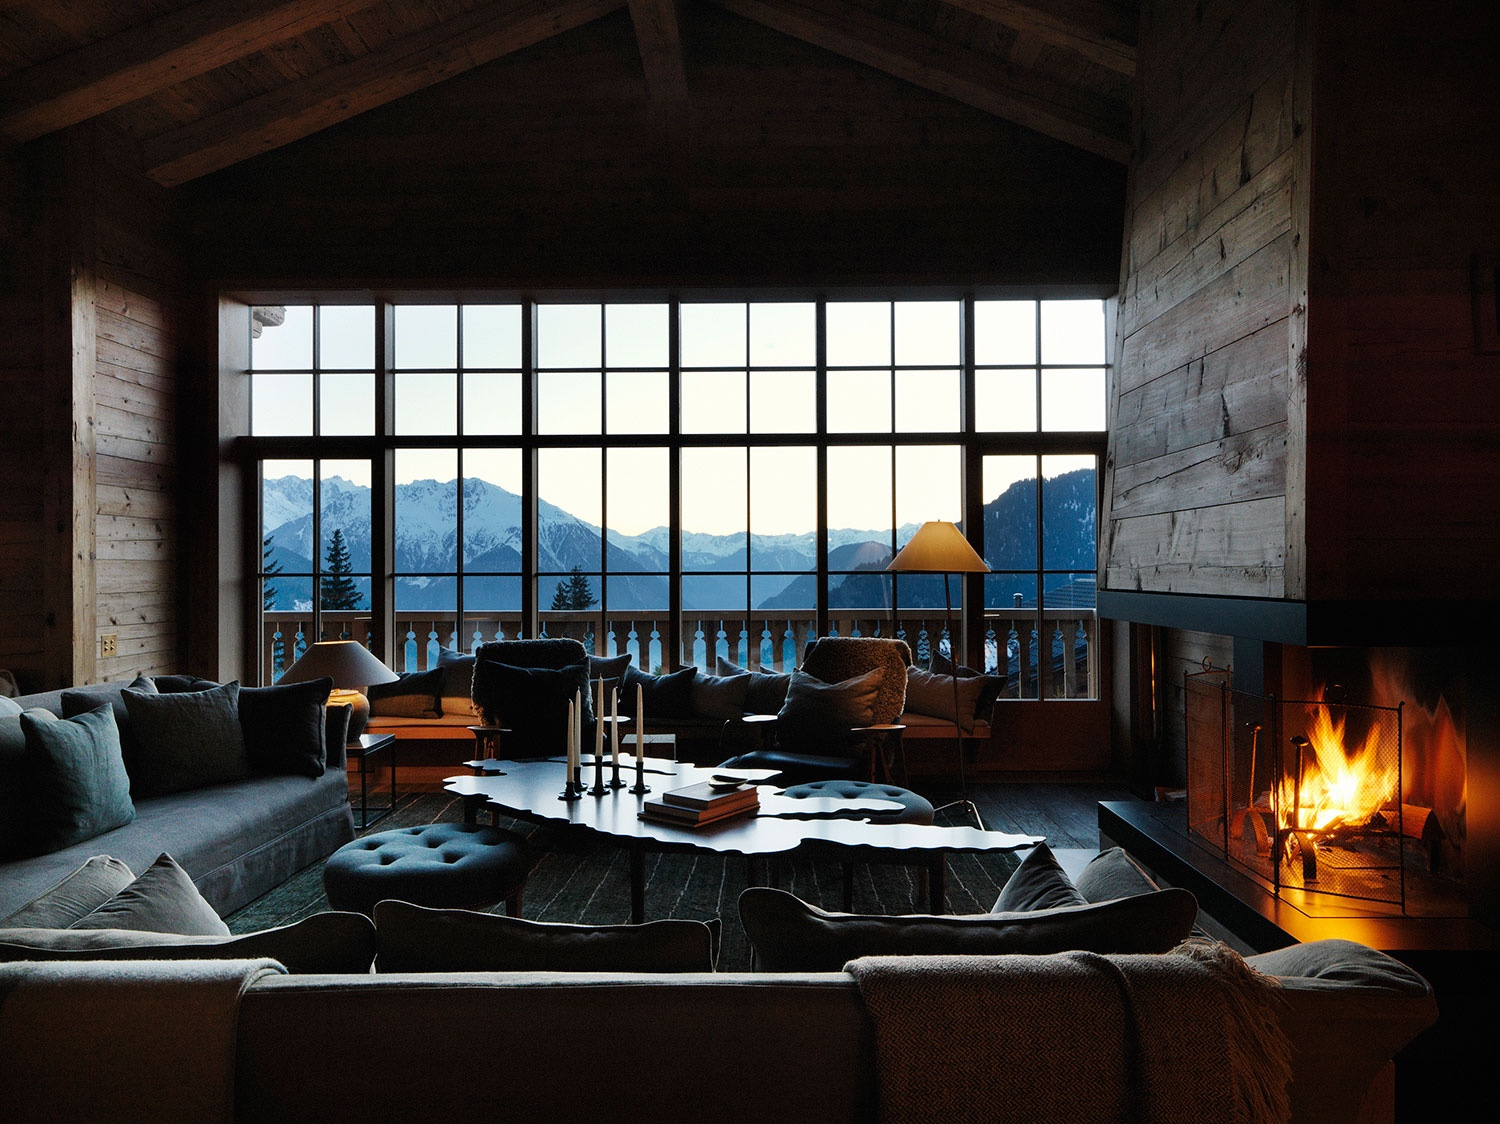 Using natural materials, layers of textile and sumptuous furniture, Ilse Crawford's Studioilse created this cosy chalet deep in the Swiss Alps. Image courtesy of Studioilse.